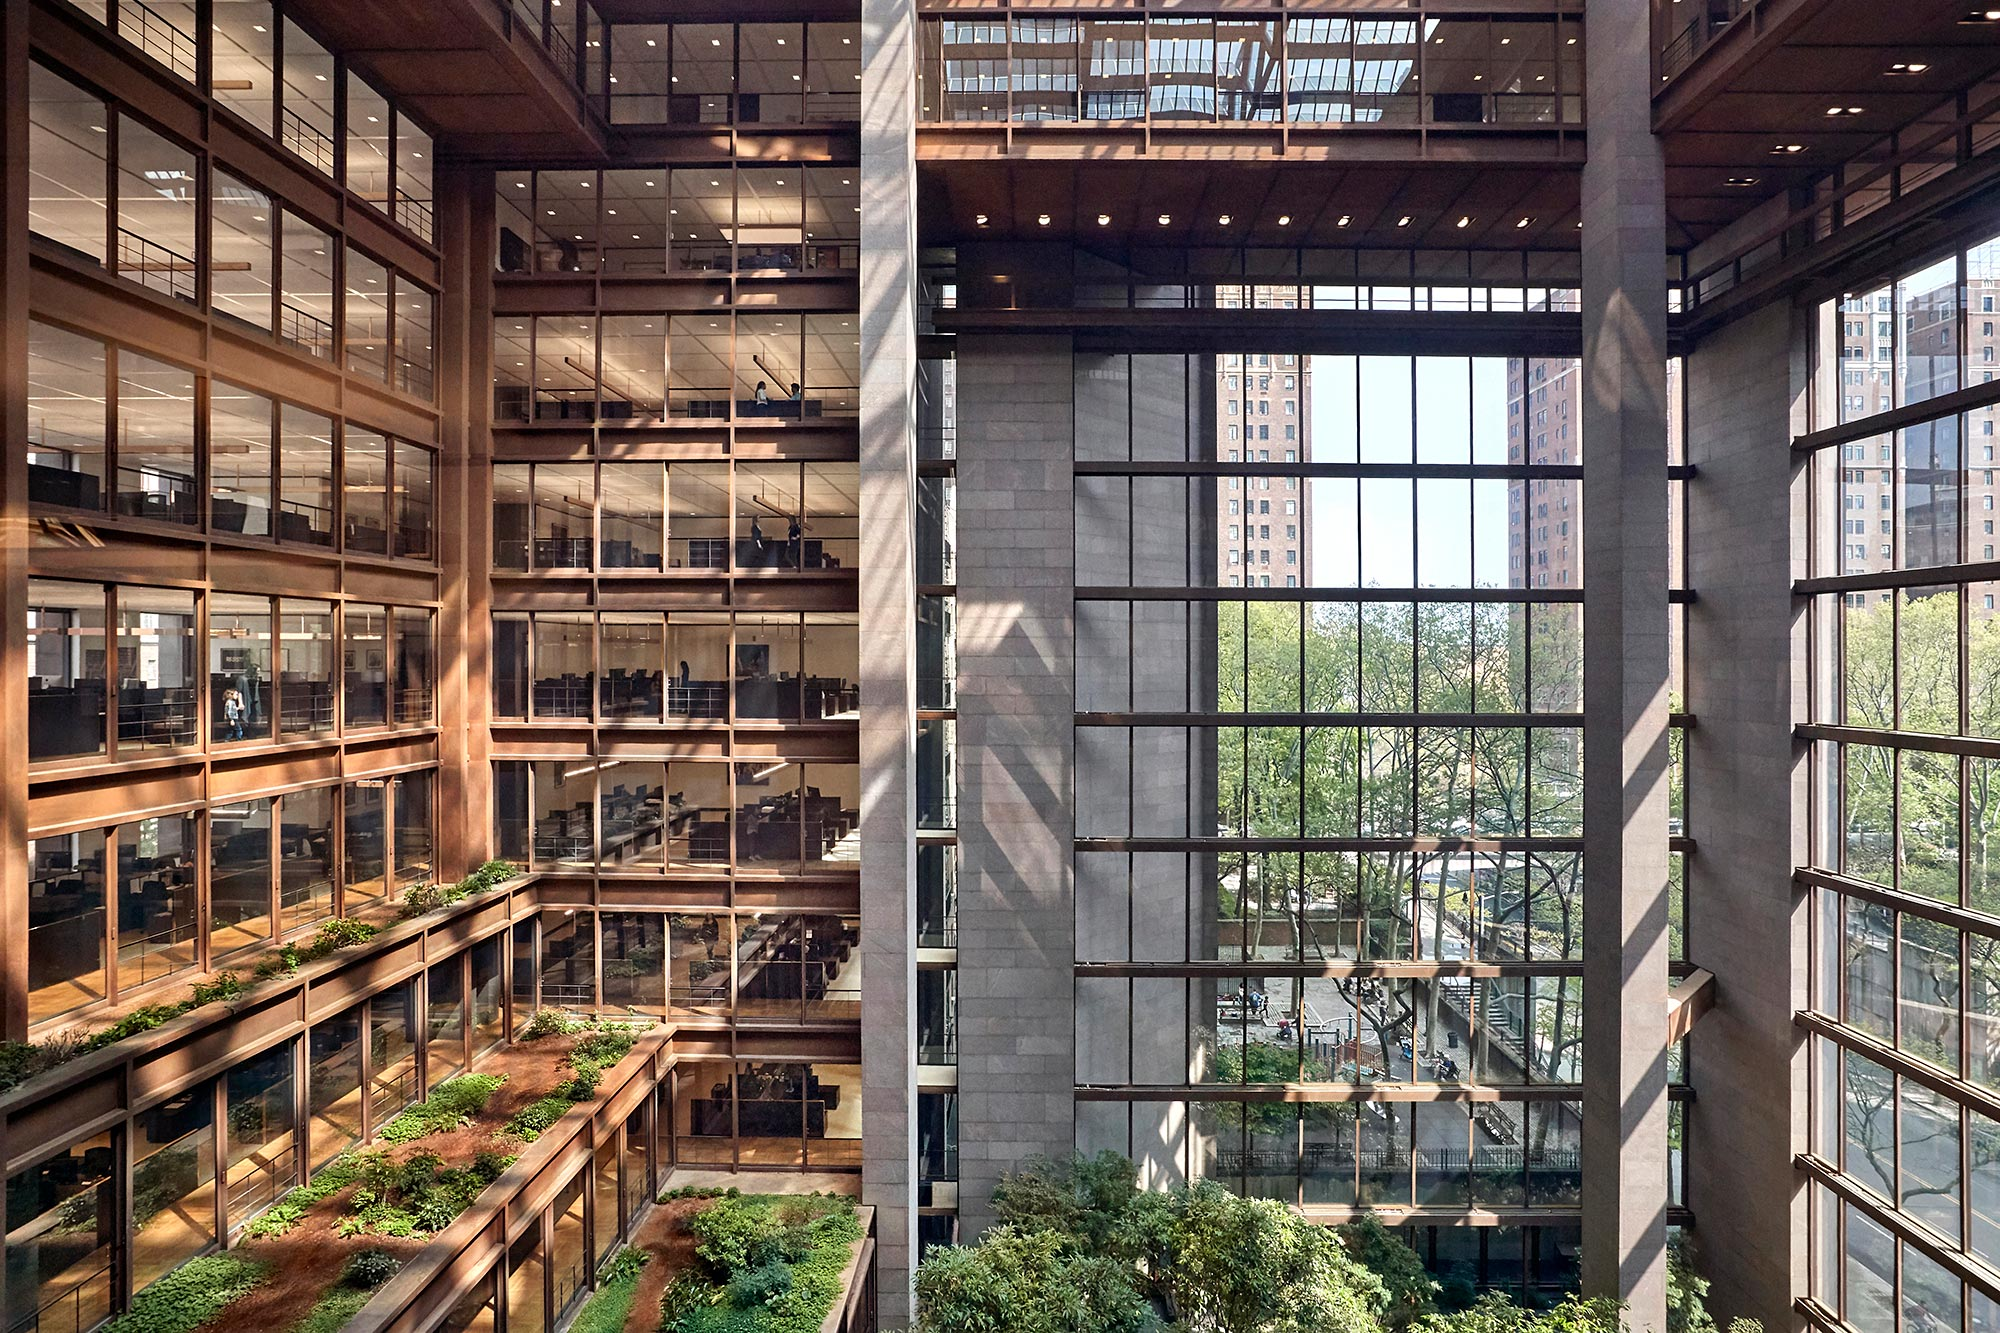 The Ford Foundation Center for Social Justice, a 2020 winner of the American Institute of Architects Committee on the Environment Top Ten Awards for excellence in sustainable design.